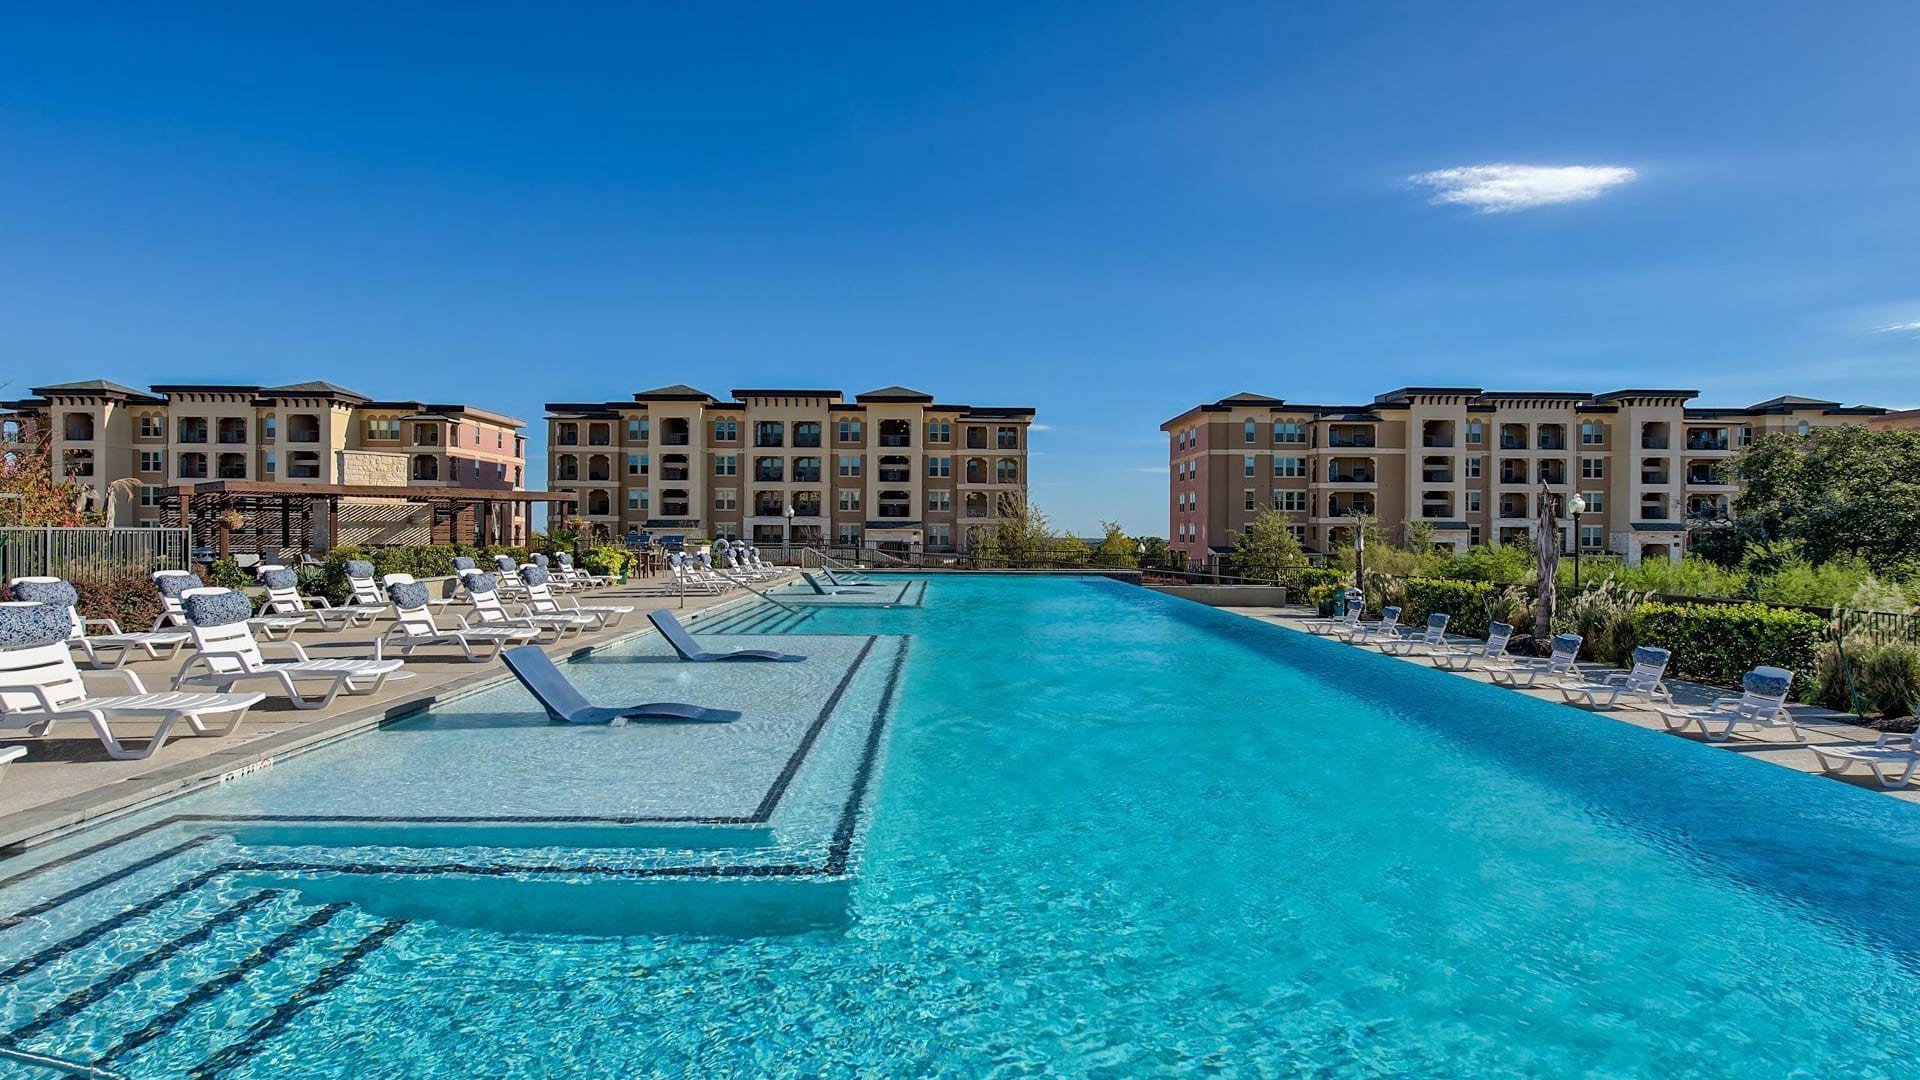 Resort style pool at luxury apartments in San Antonio